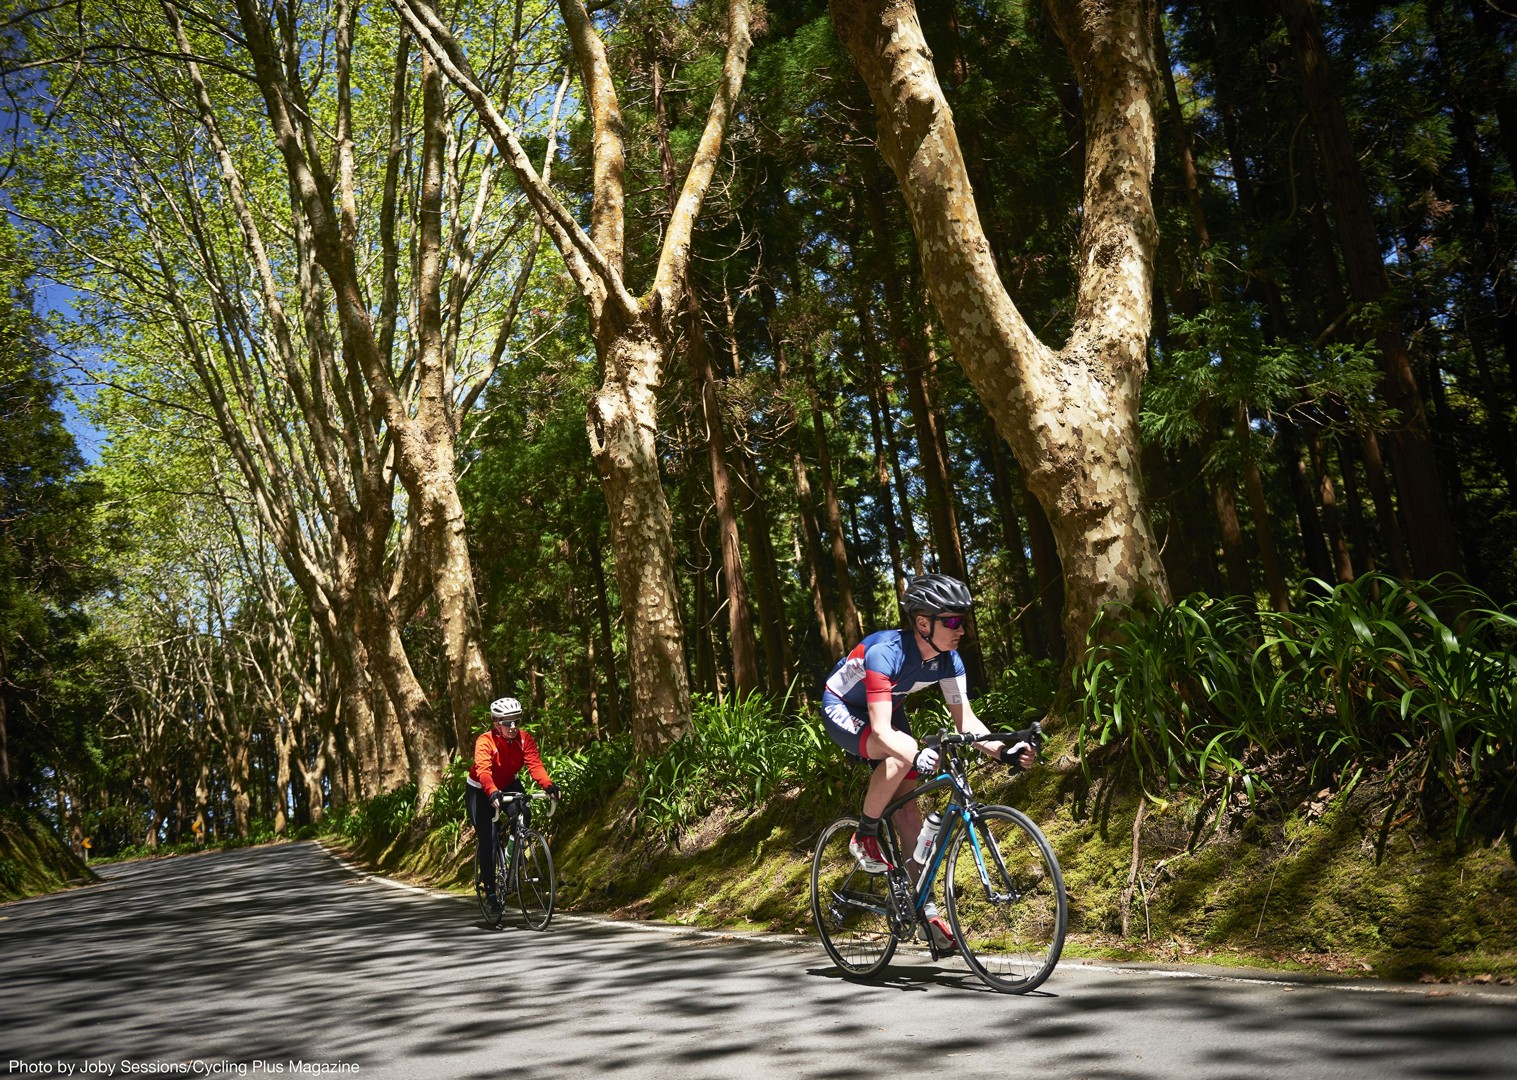 cycling-holiday-in-the-azores-sao-miguel-skedaddle.jpg - The Azores - Lost World of Sao Miguel - Road Cycling